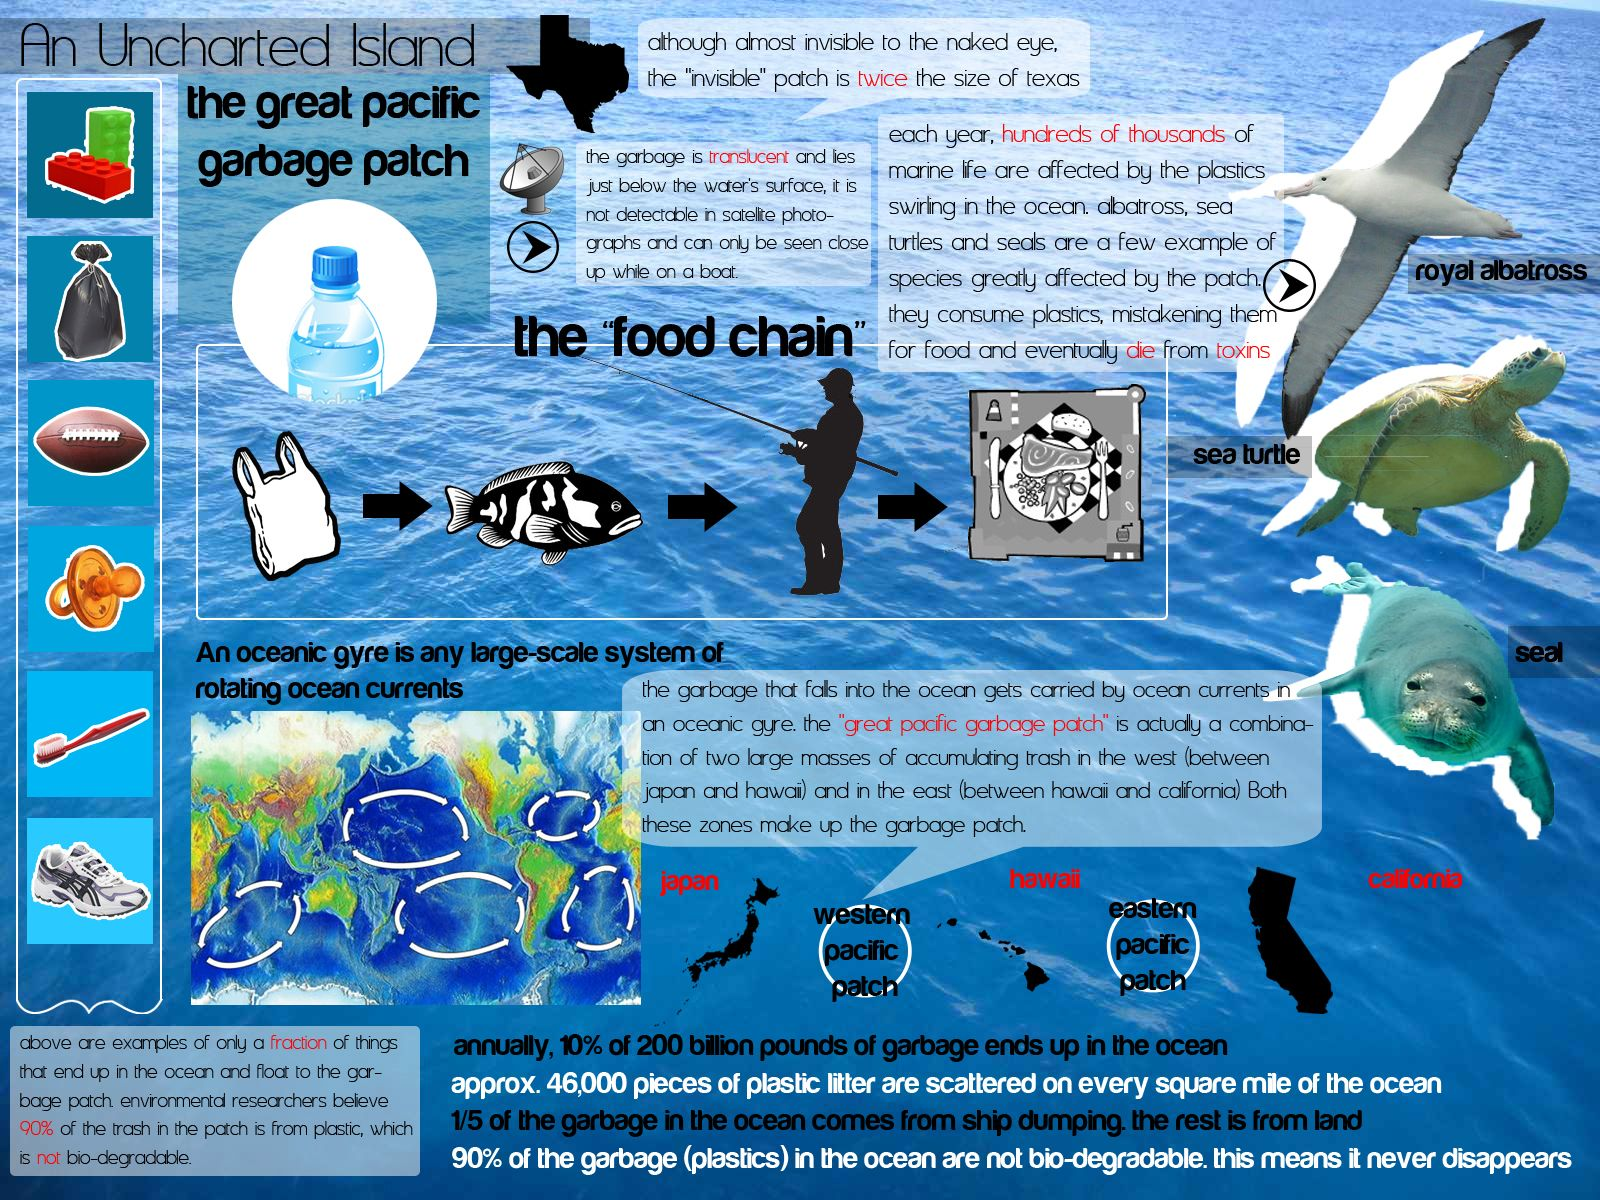 The Great Pacific Garbage Patch Is Twice The Size Of Texas